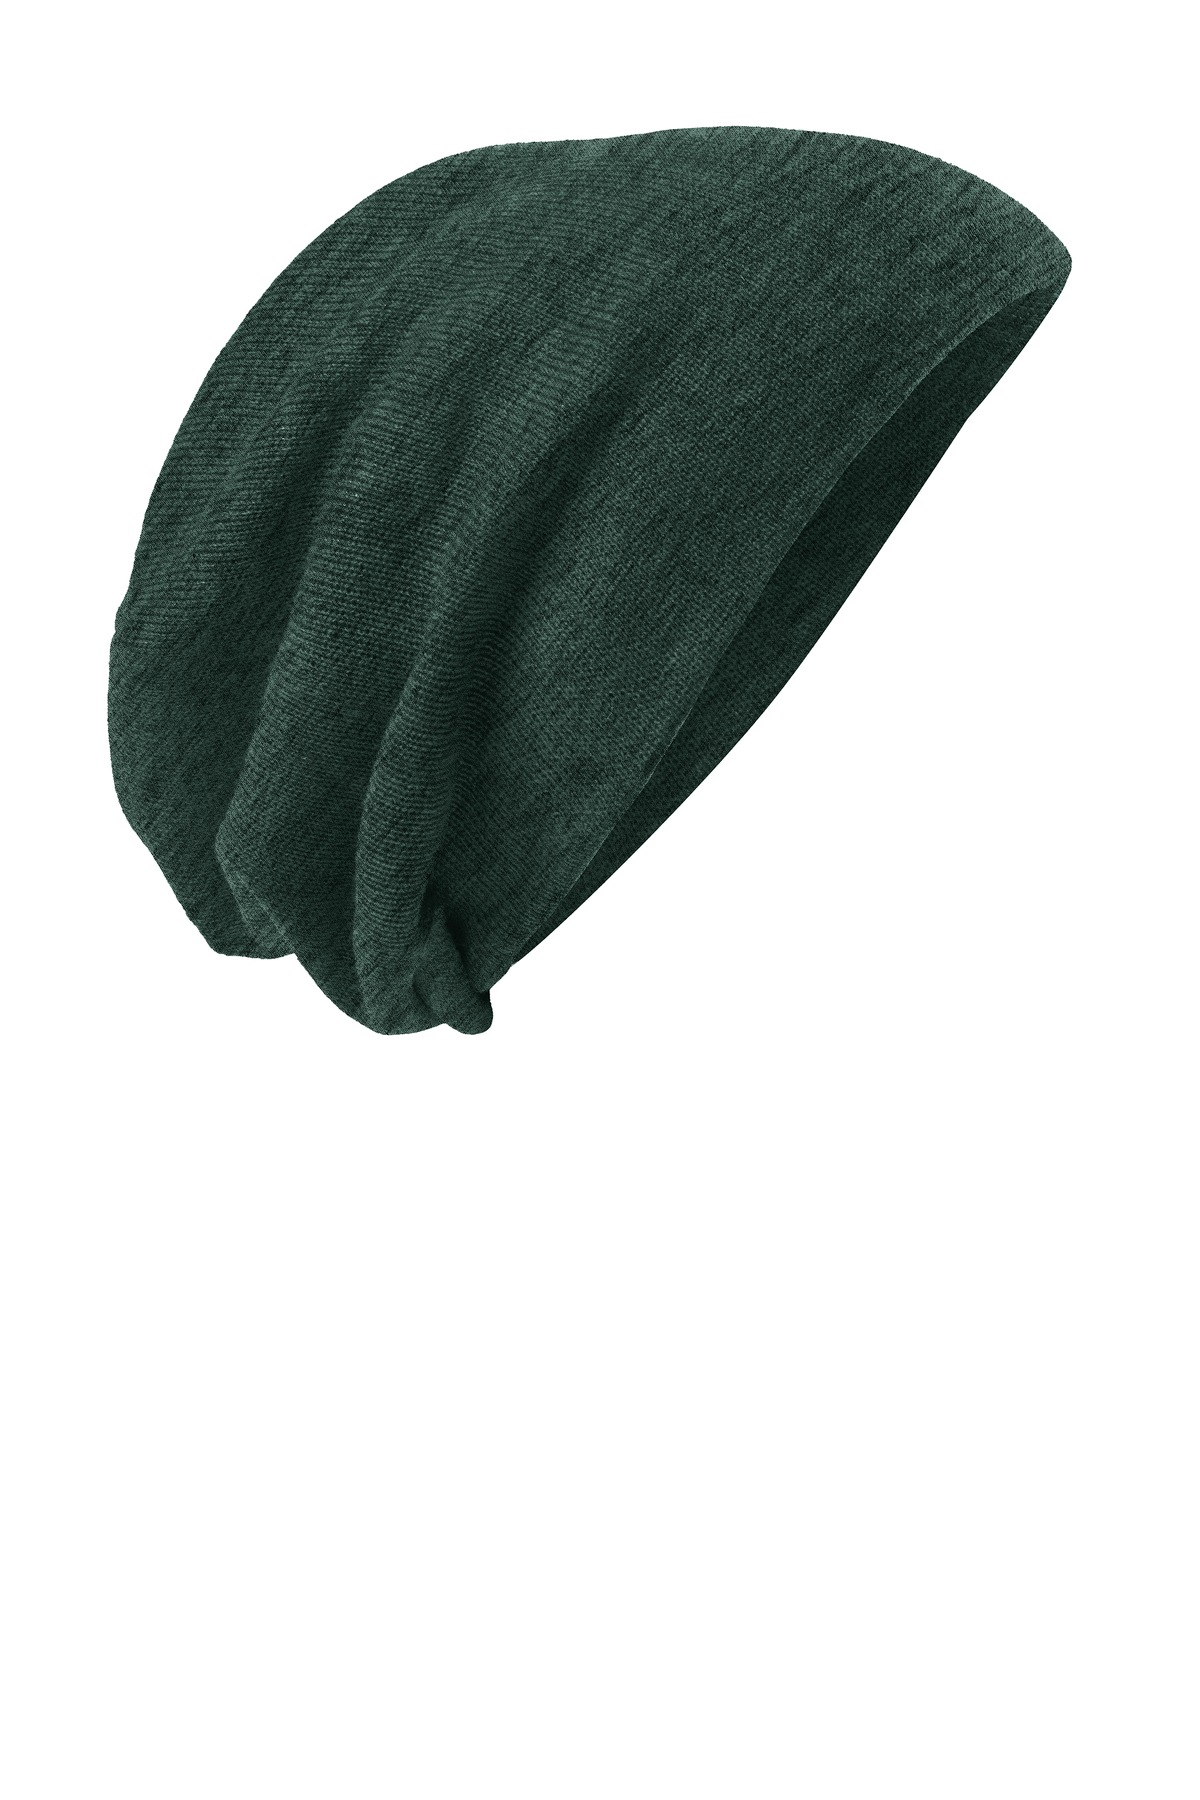 District ®  Slouch Beanie DT618 - Forest Green Heather